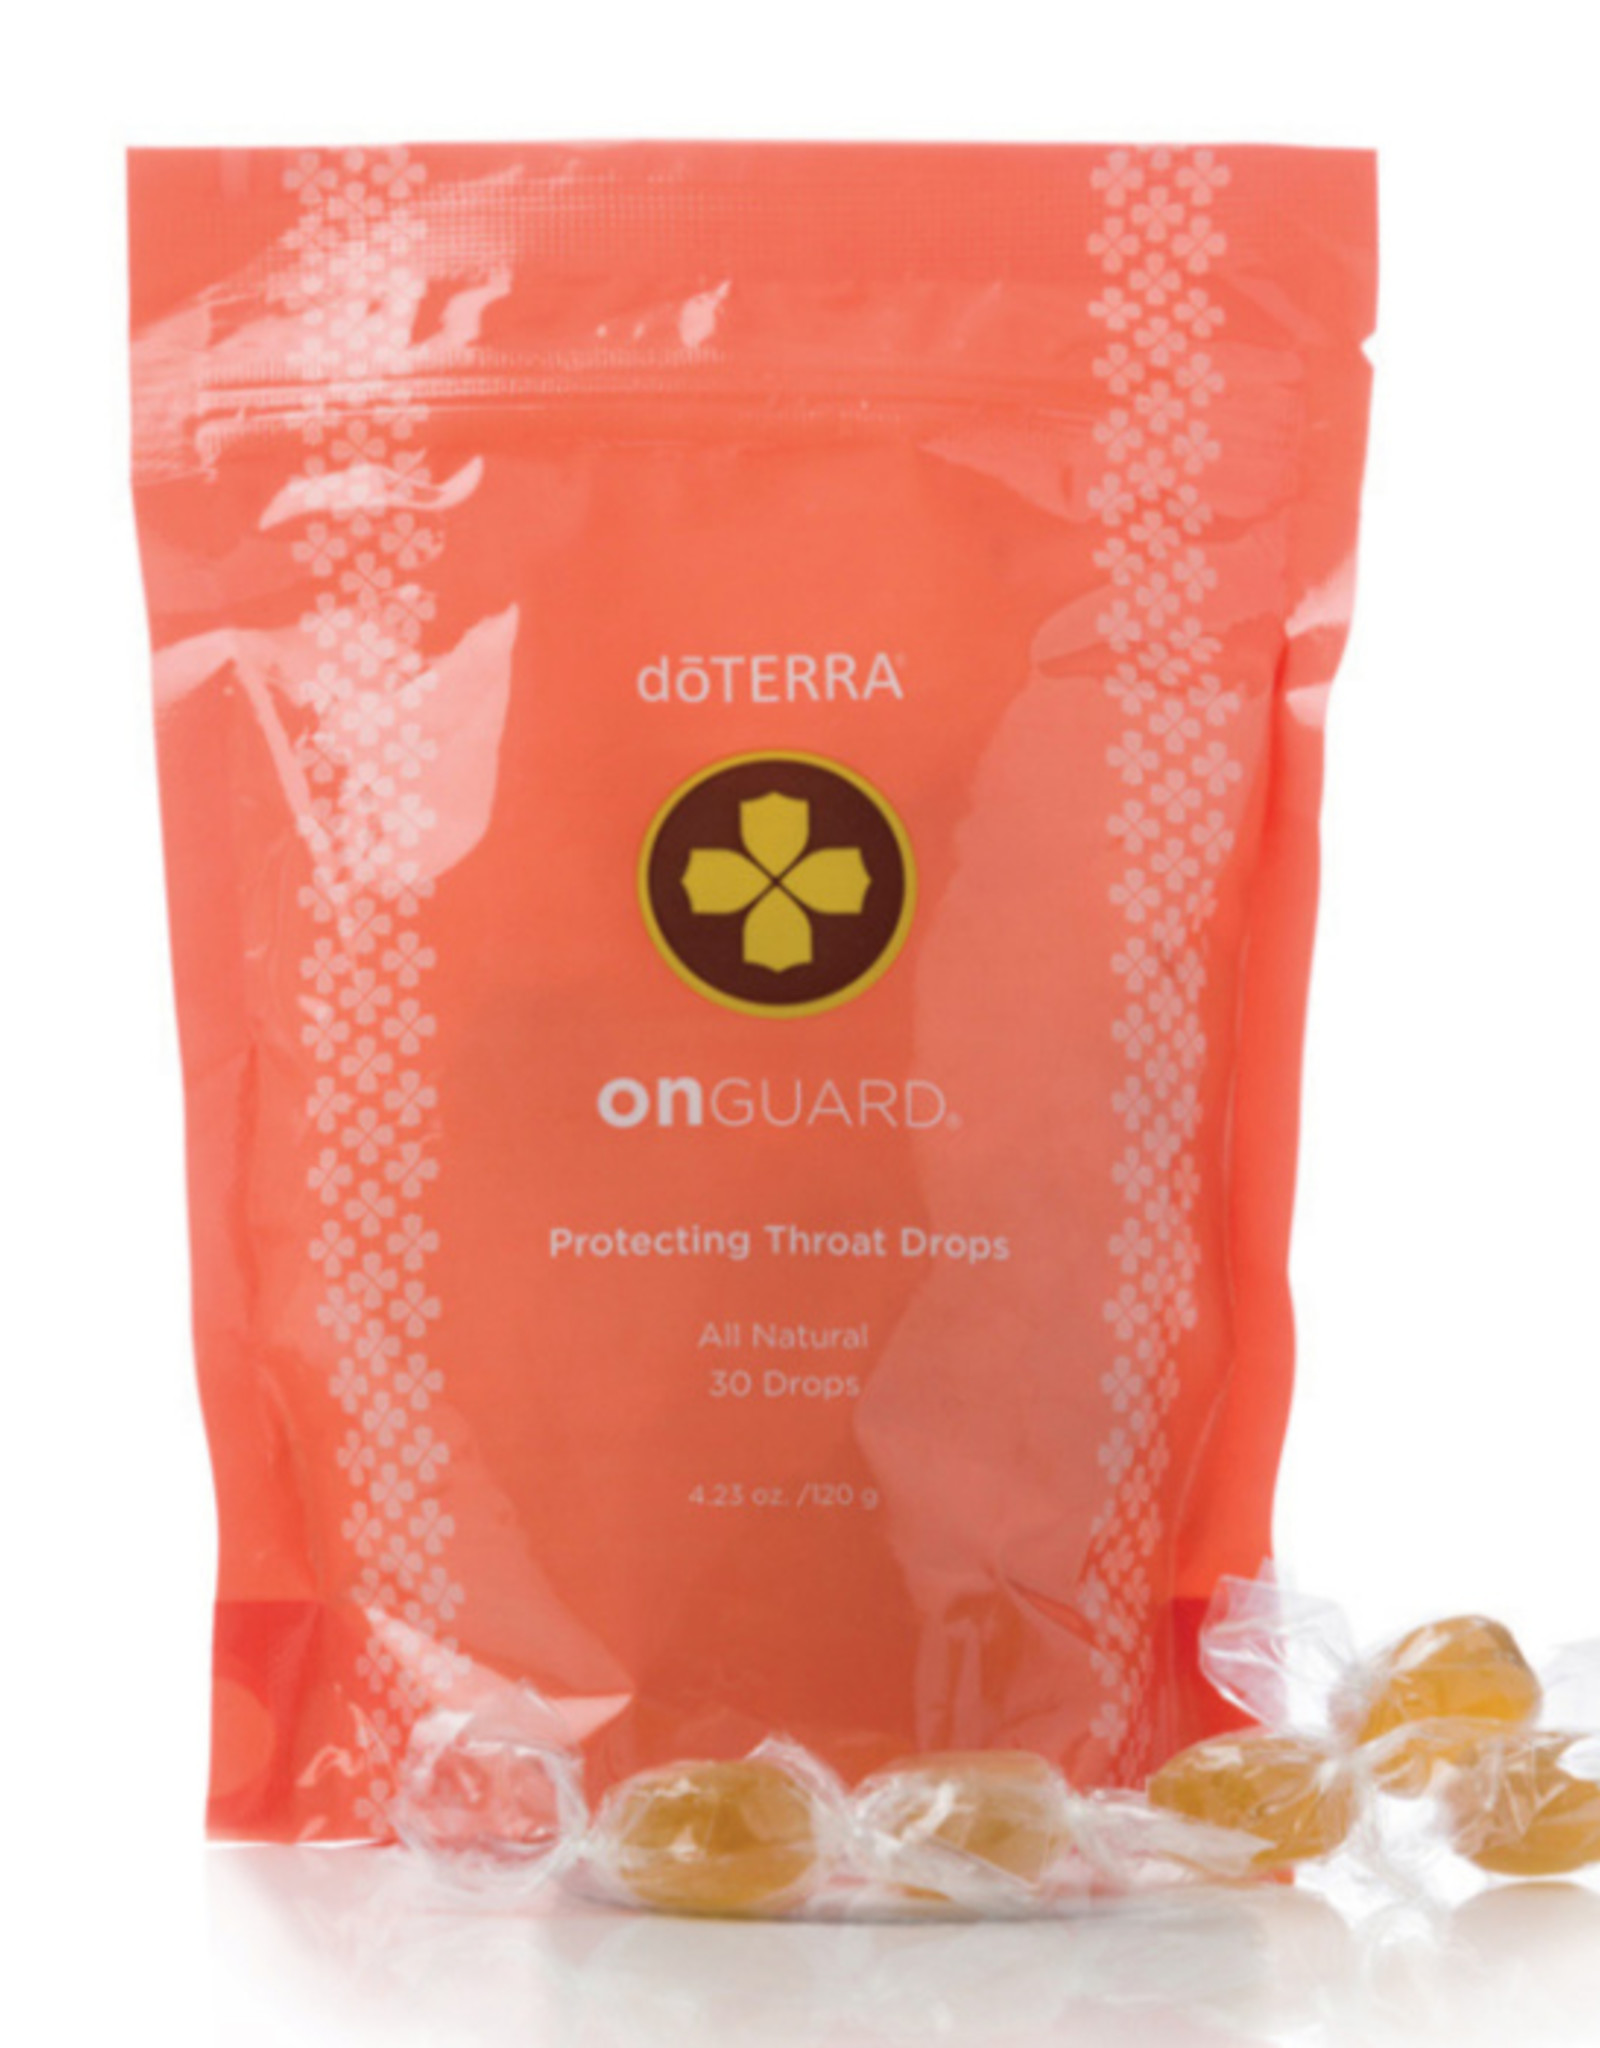 dōTERRA On Guard Protecting Throat Drops